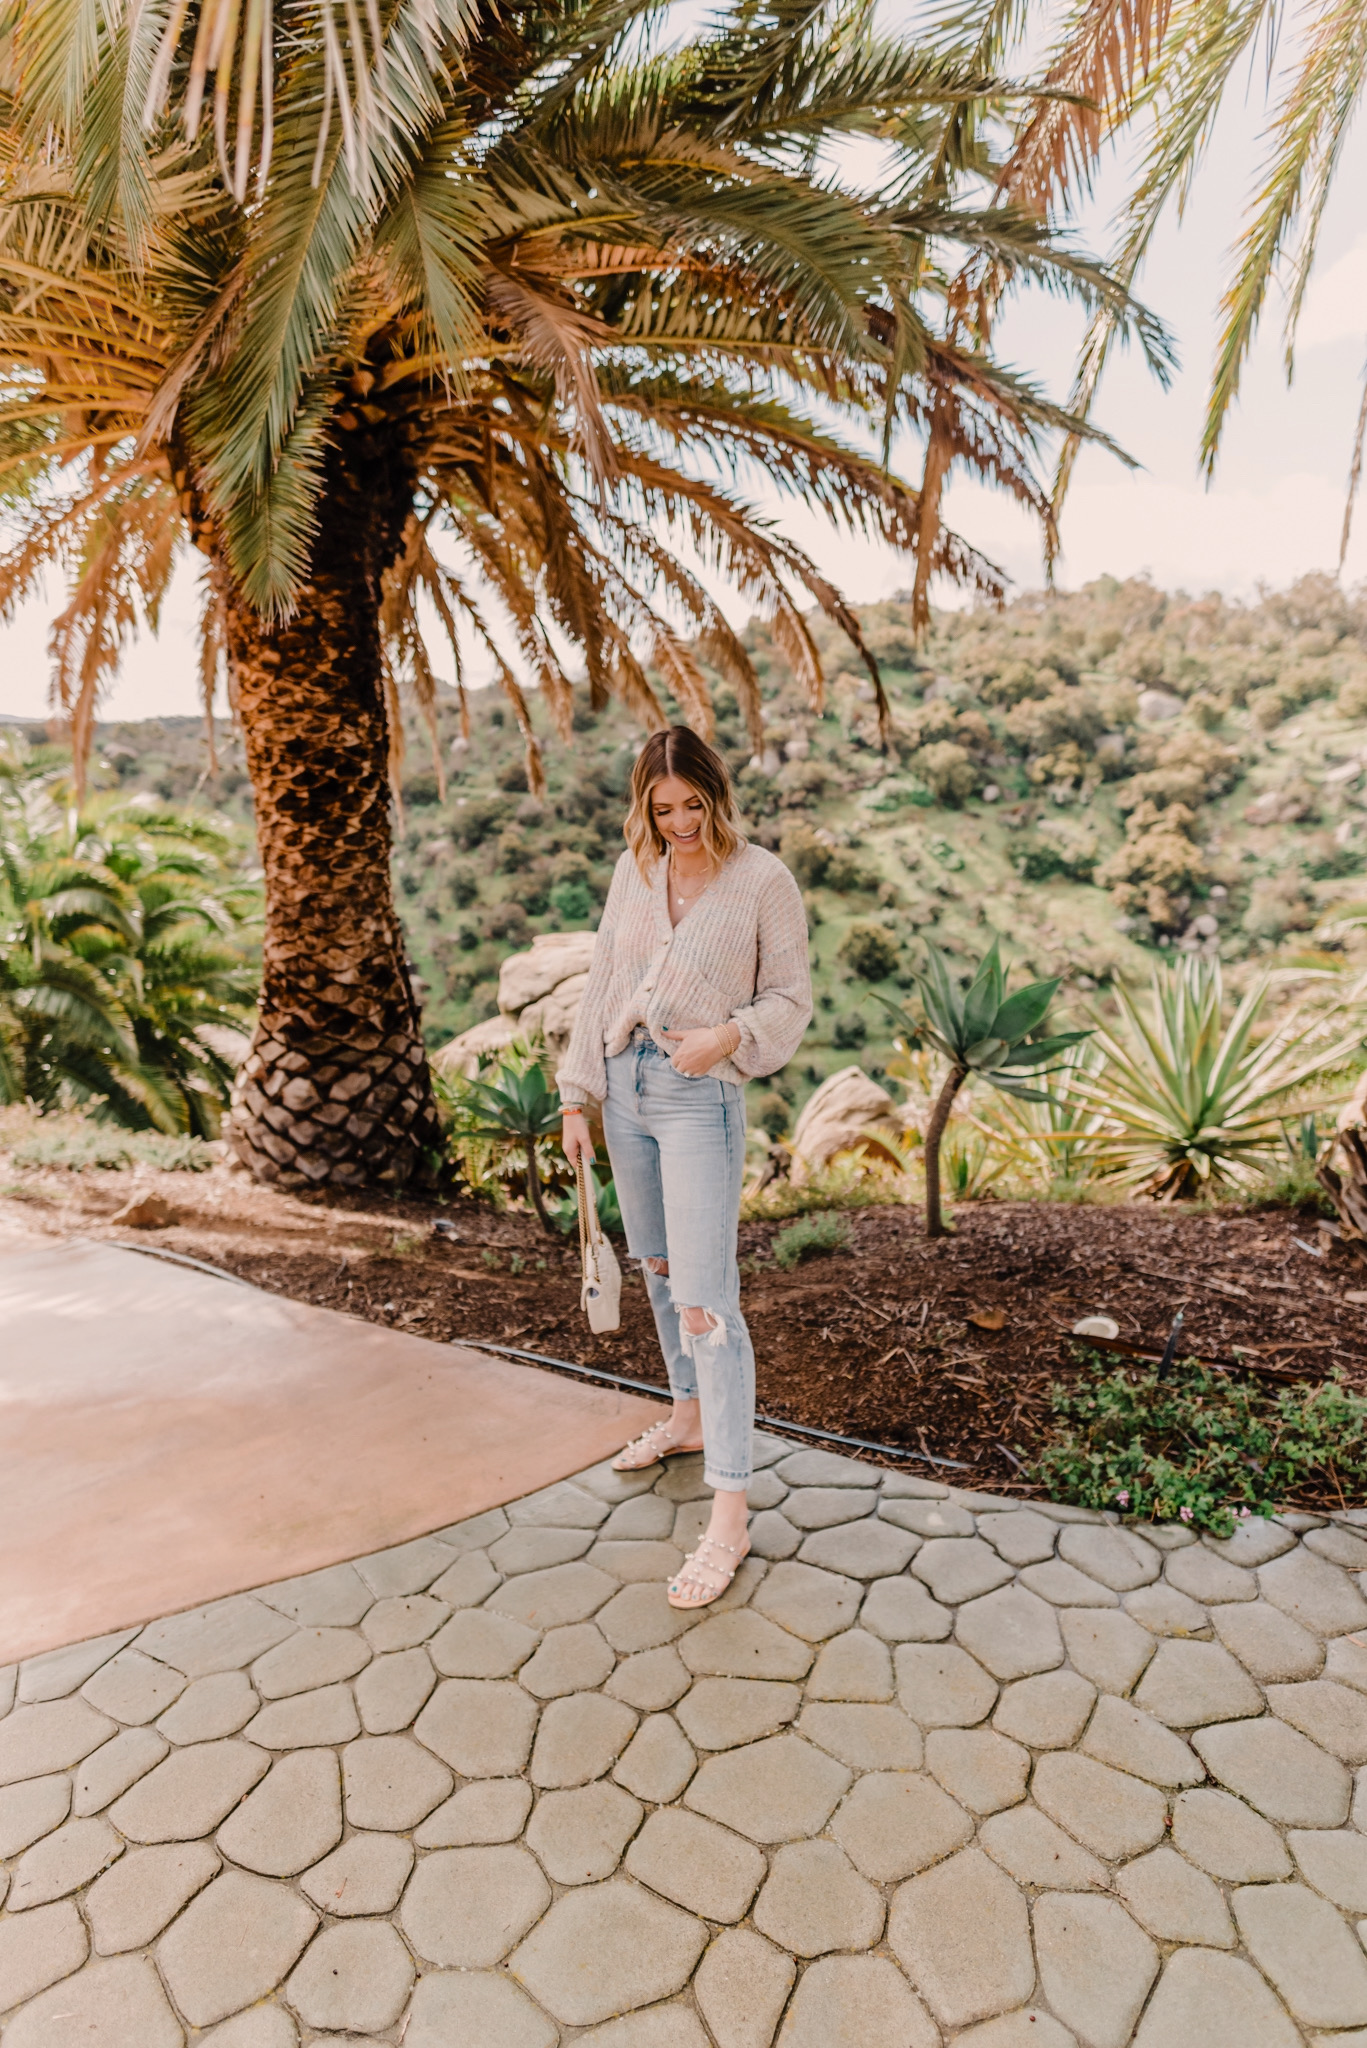 Spring arrivals featured by top San Diego fashion blog, Navy Grace. |2020 Spring Arrivals by popular San Diego fashion blog, Navy Grace: image of a woman sanding outside under a palm tree and wearing a Shopbop BB Dakota Double Rainbow Cardigan, TopShop Bleach Wash Double Rip Mom Tapered Jeans, Schutz Yarin Strappy Sandals, Nordstrom Gucci Small Matelassé Leather Shoulder Bag, and Gorjana Parker Wrap Necklace.